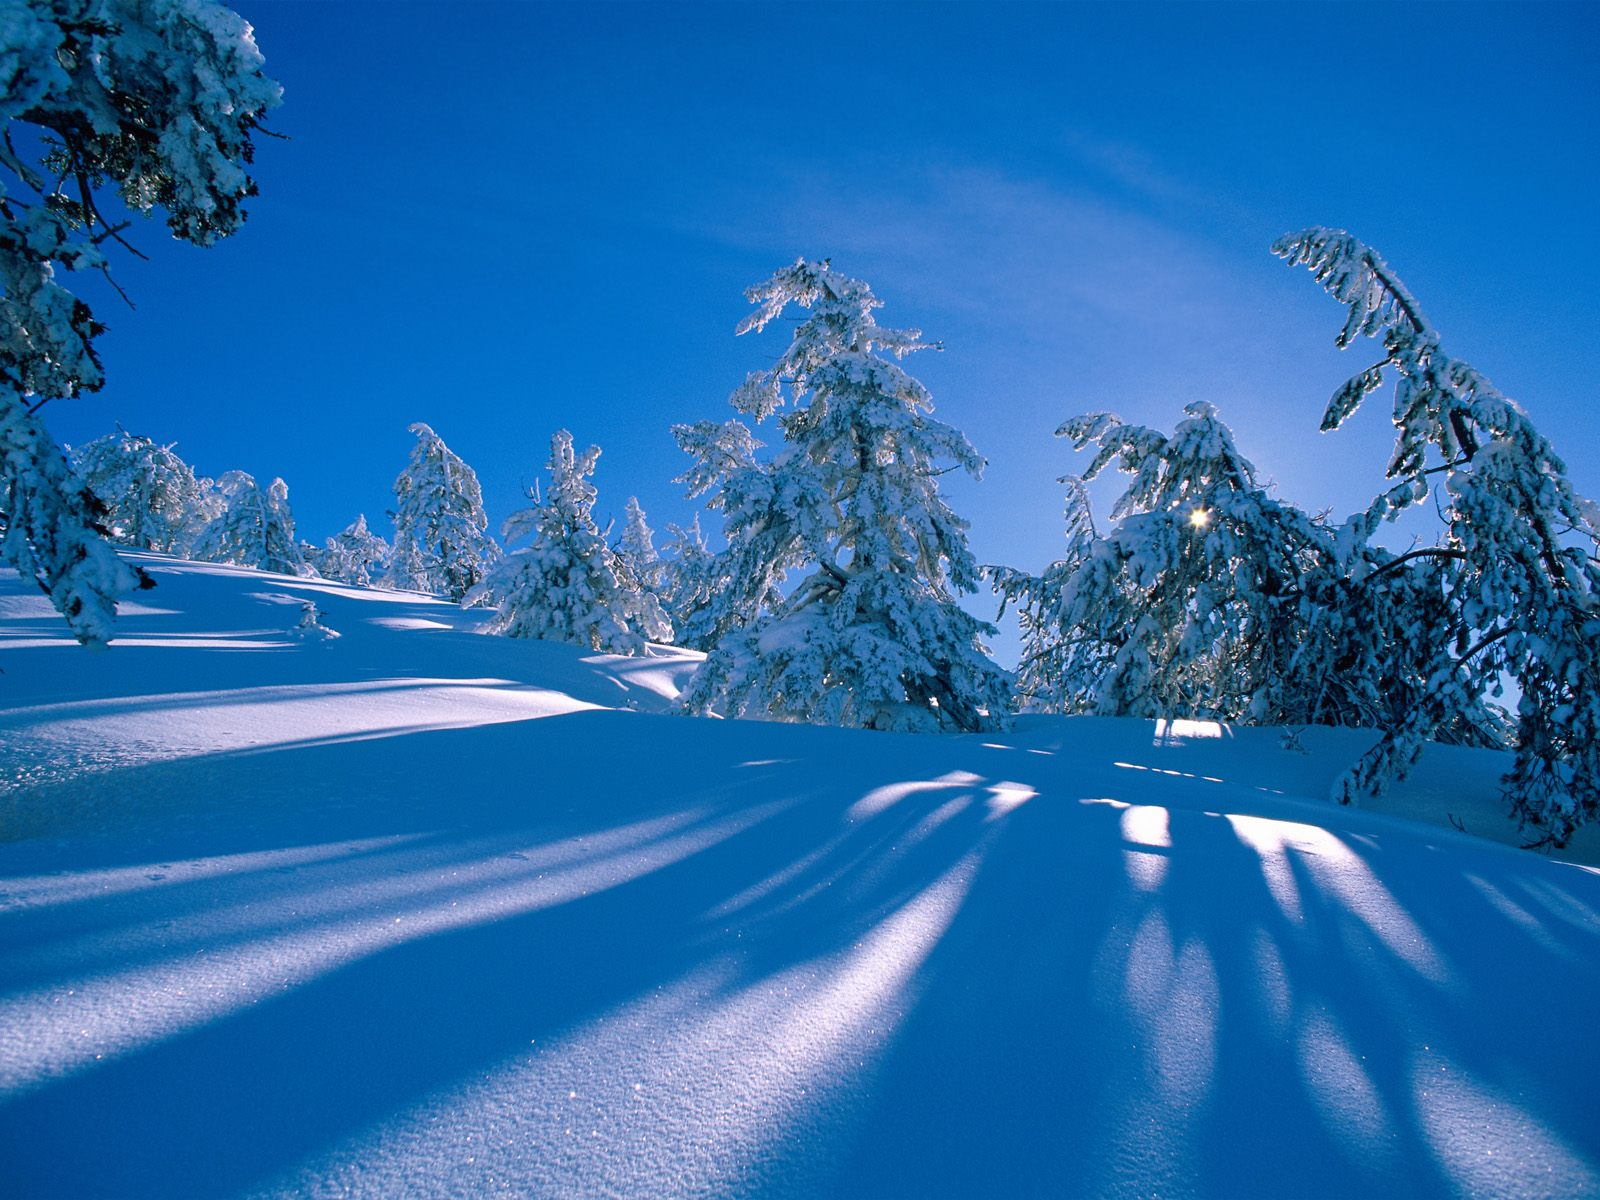 winter desktop backgrounds free wallpapers for pc